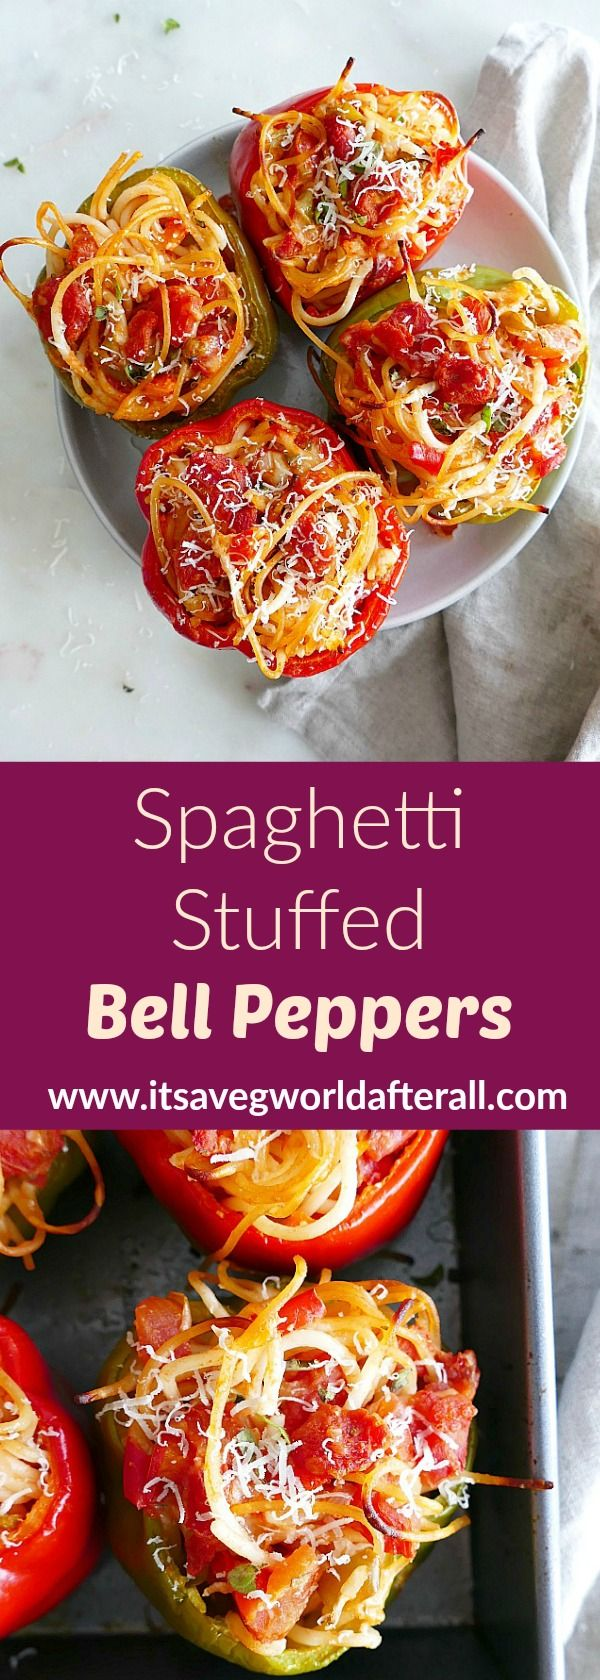 Spaghetti Stuffed Bell Peppers #stuffedbellpeppers